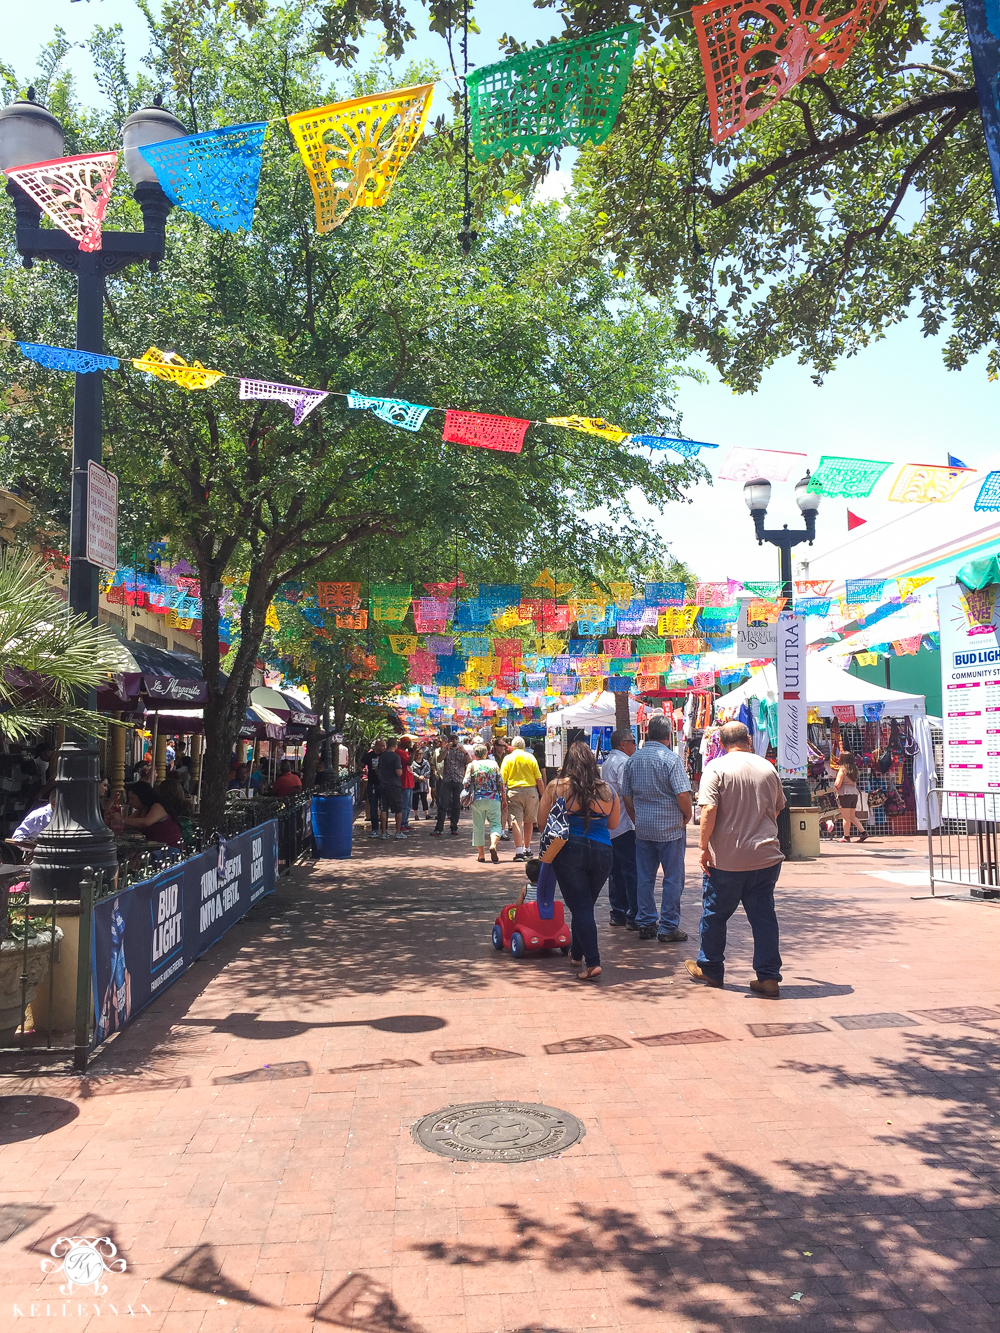 Texas Trip and San Antonio Fiesta Week-downtown market